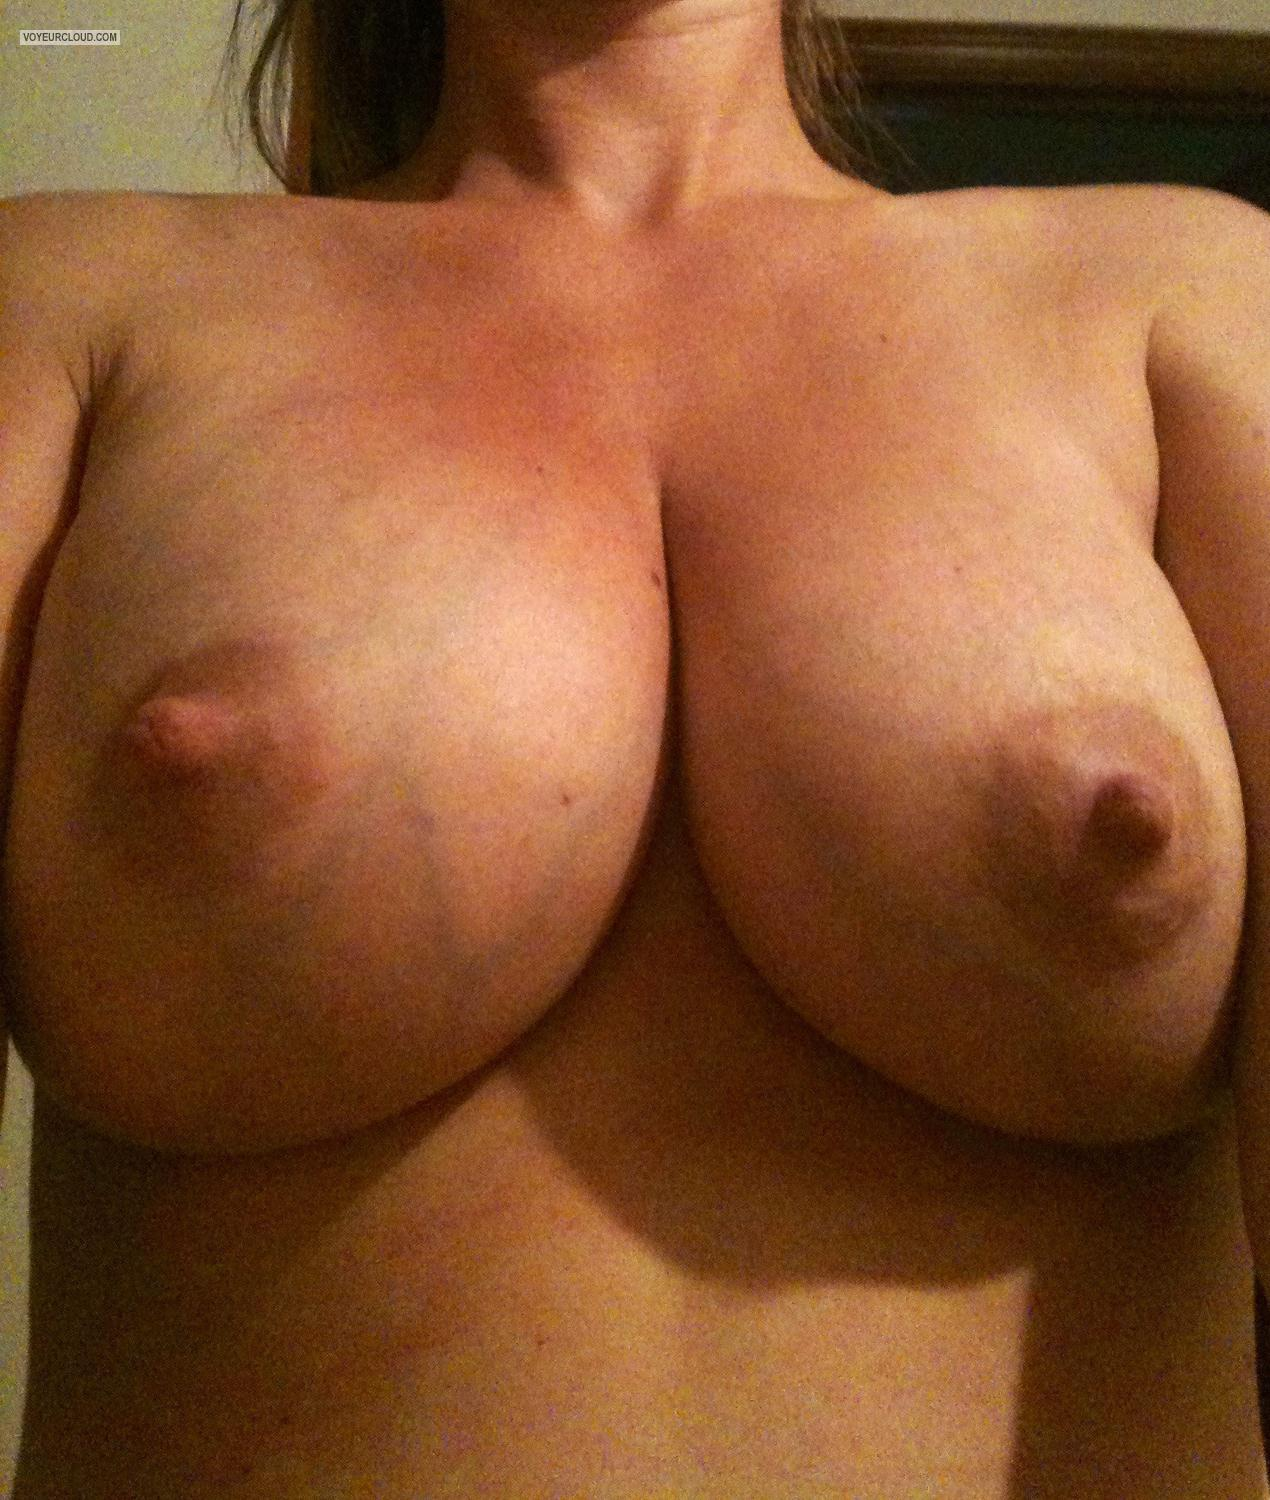 Tit Flash: Big Tits By IPhone - Nati from United States